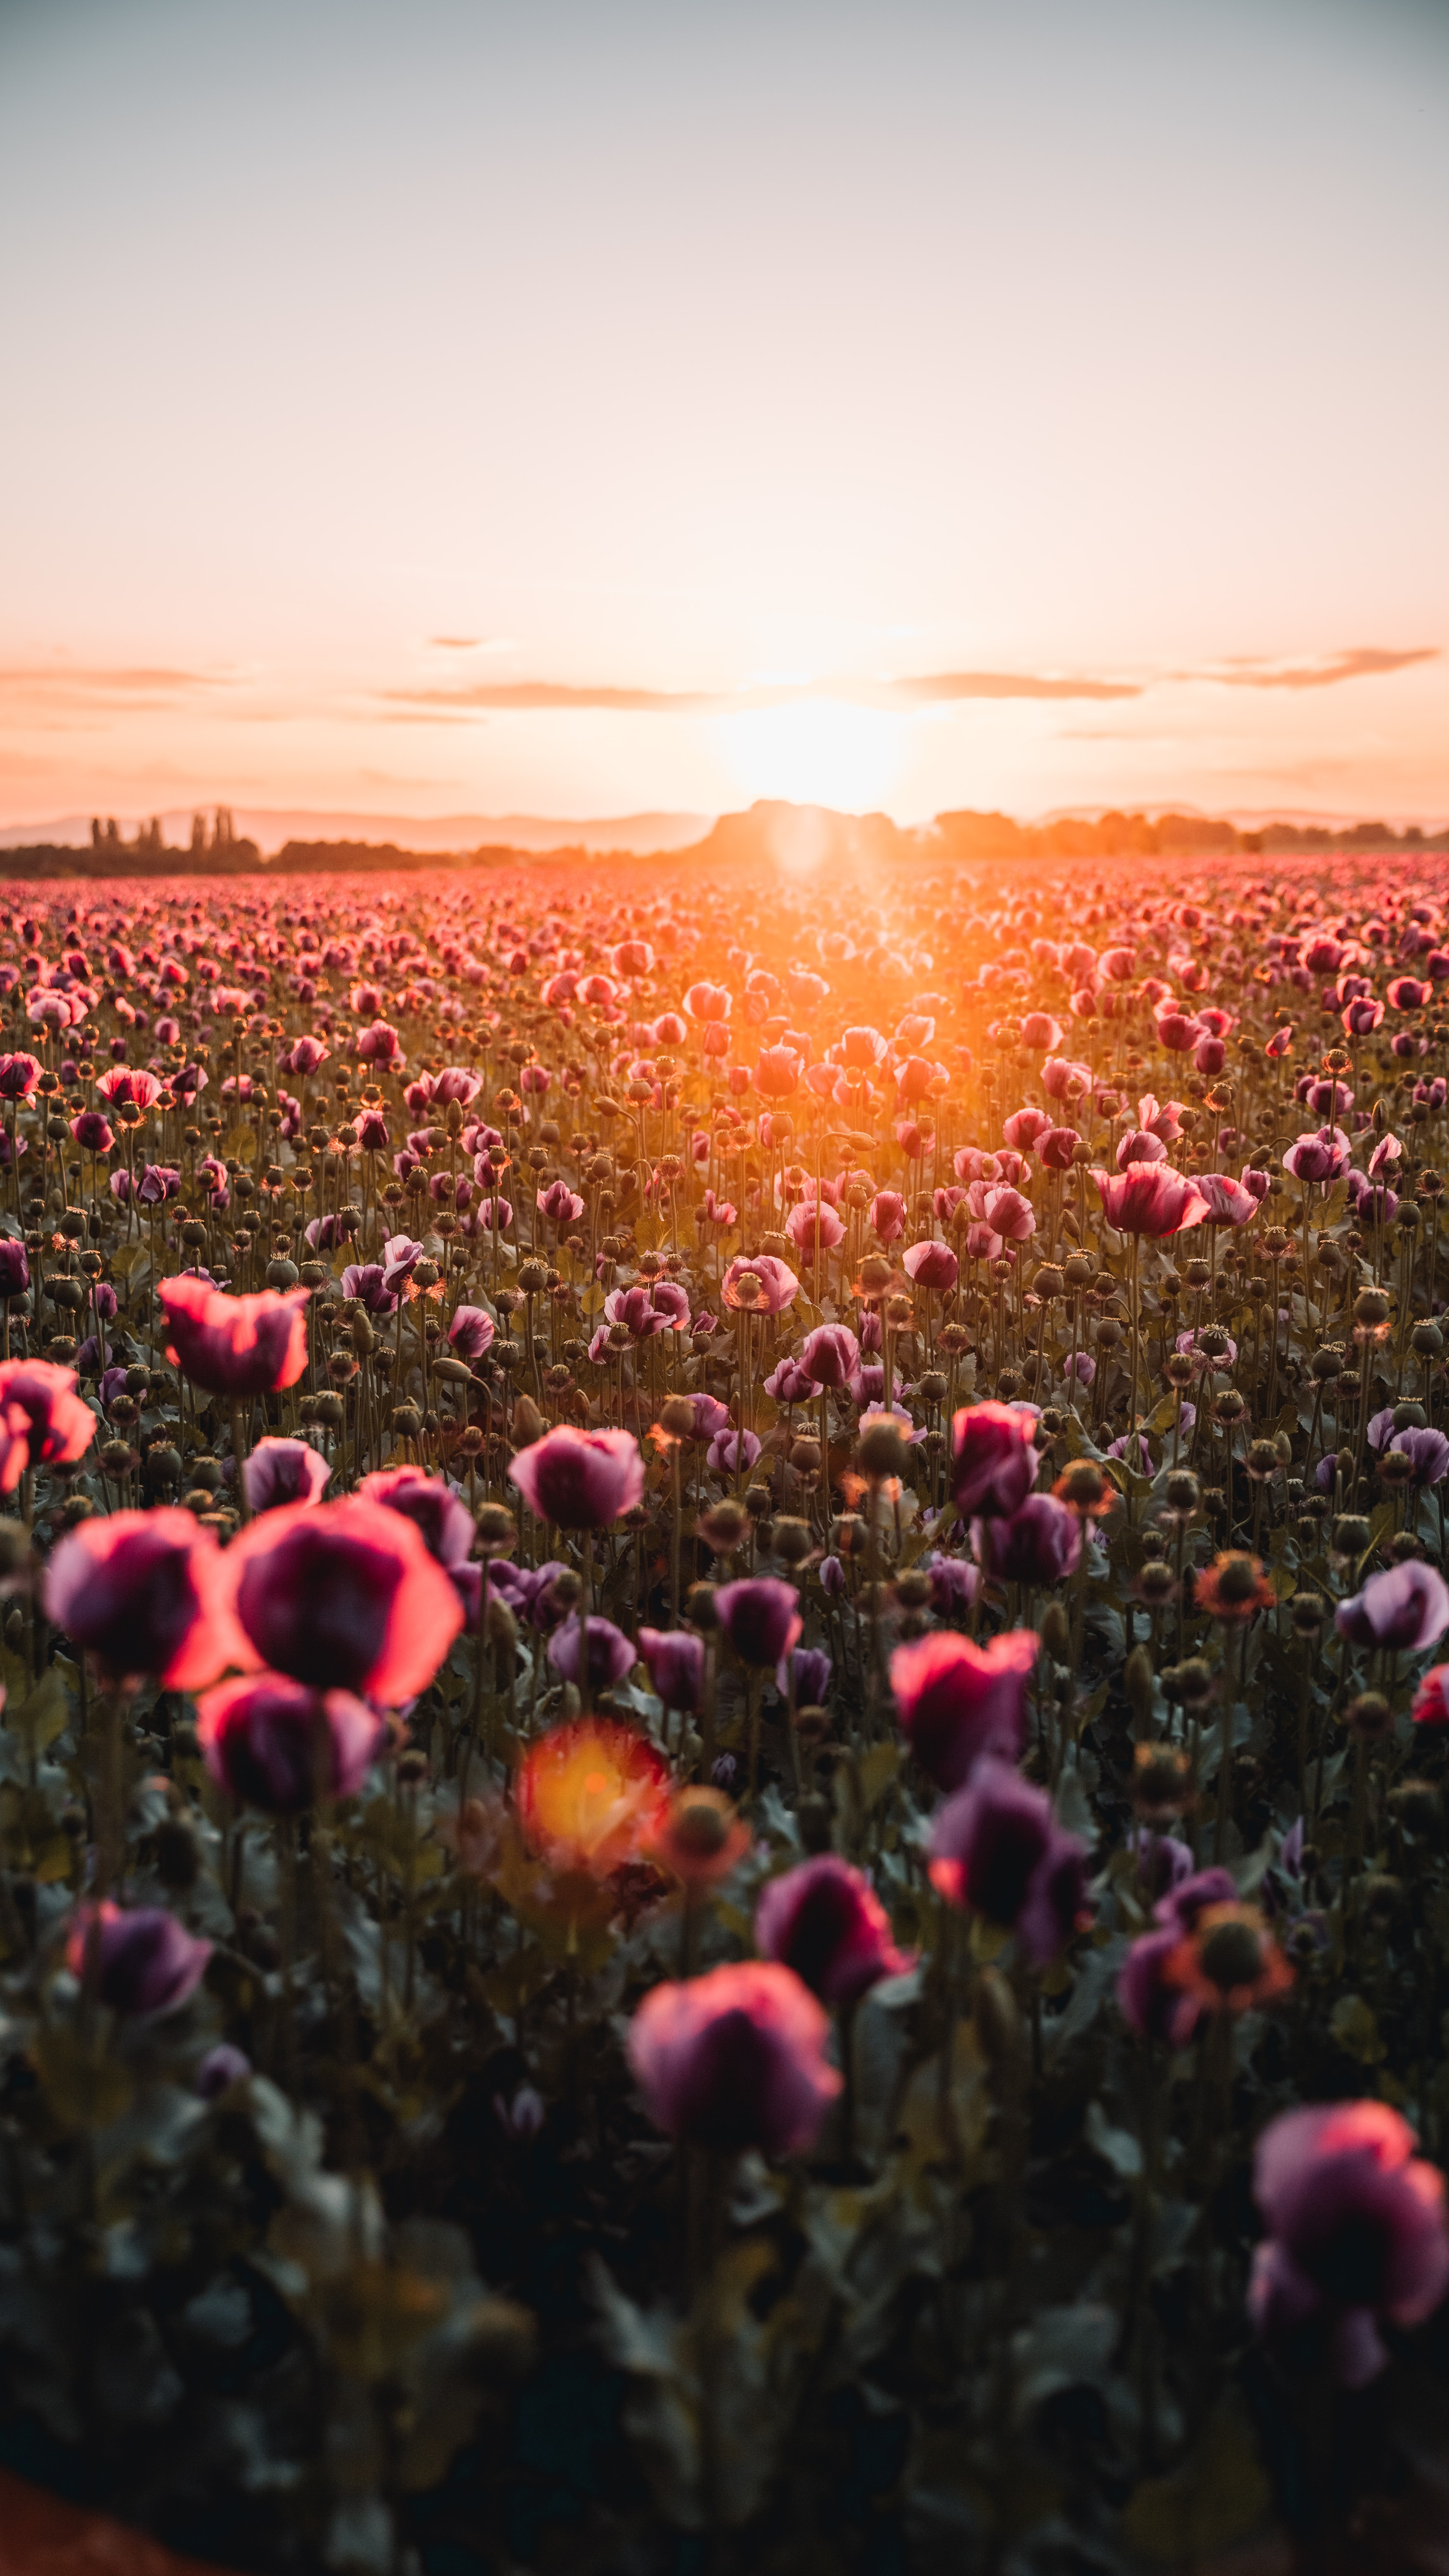 127604 Screensavers and Wallpapers Poppies for phone. Download Flowers, Sunset, Poppies, Beams, Rays, Dahl, Distance, Wildflowers pictures for free